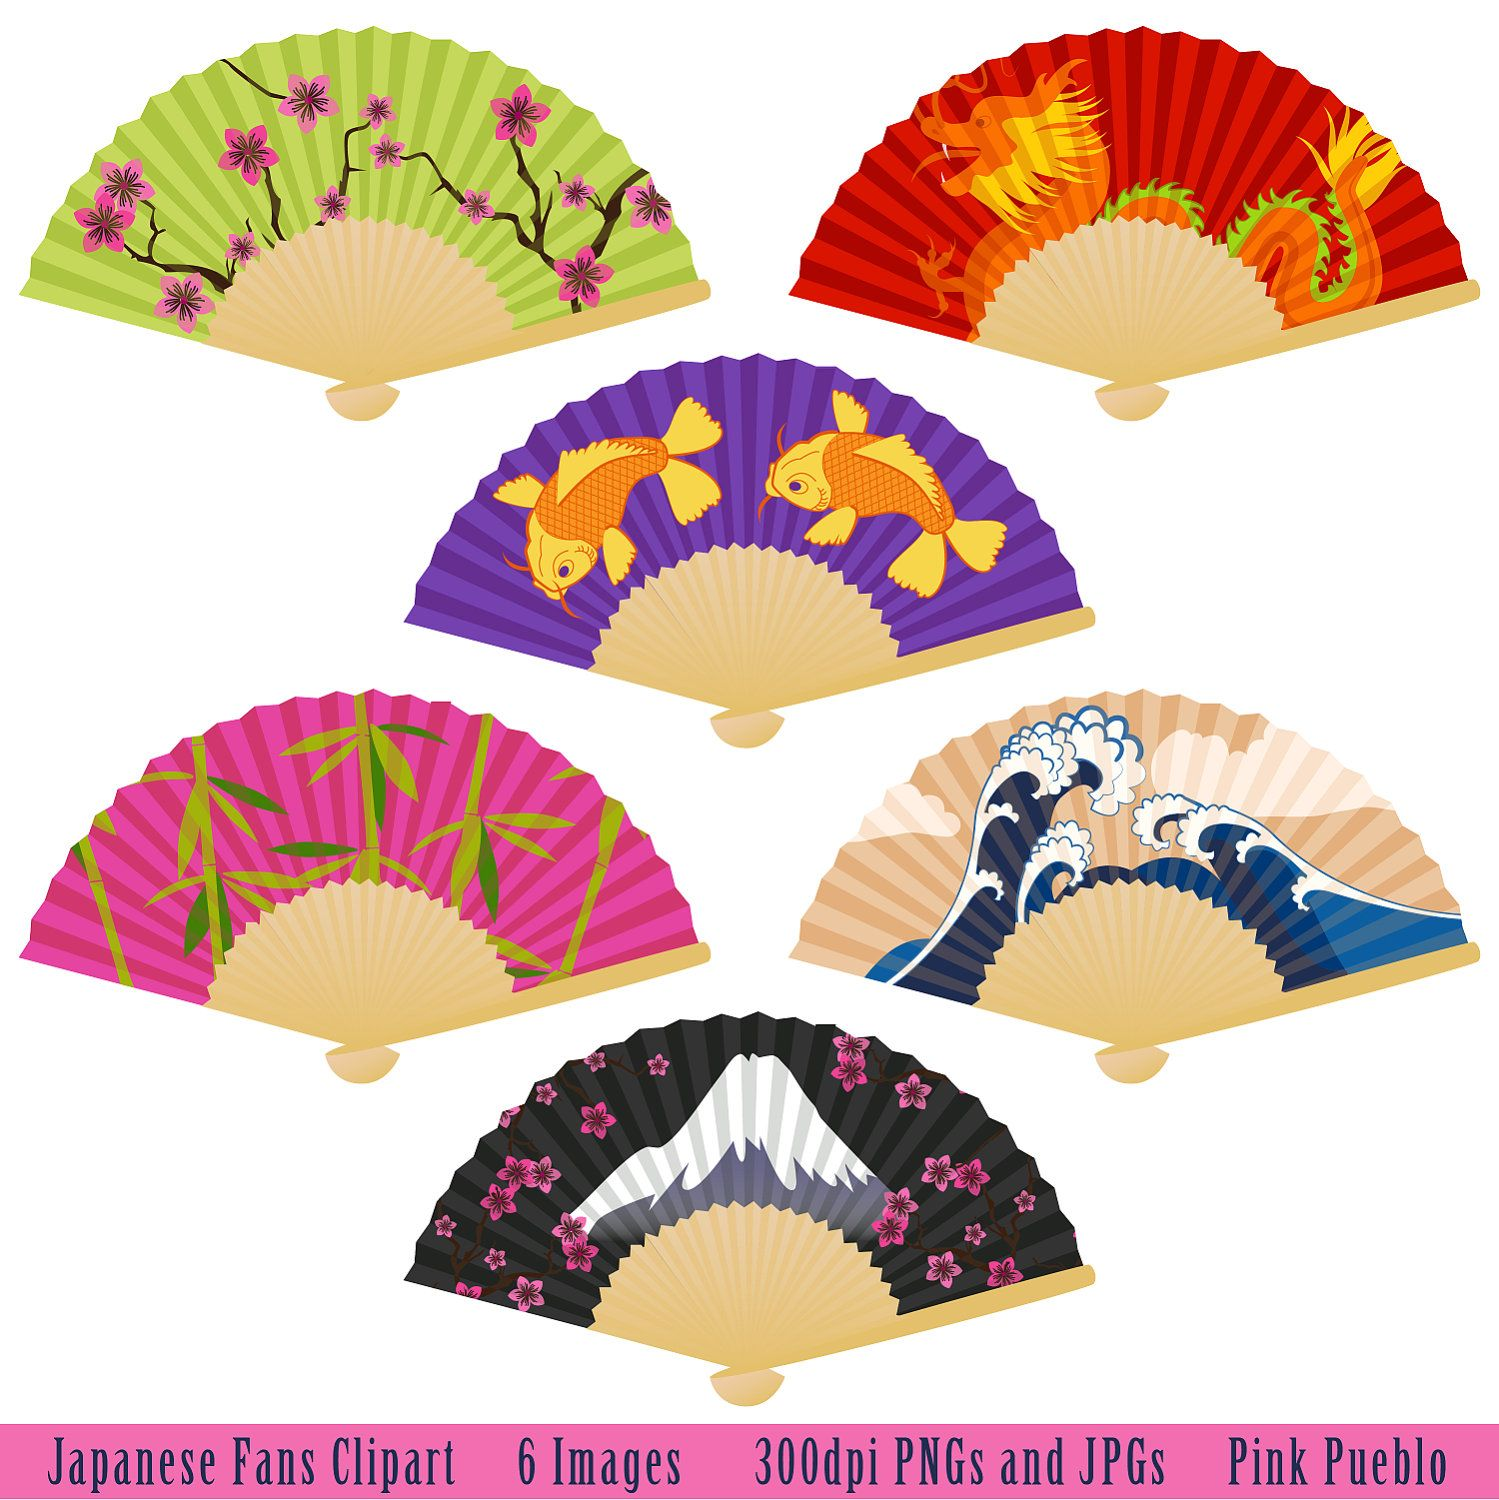 Japanese fans clip art. Fan clipart fan japan